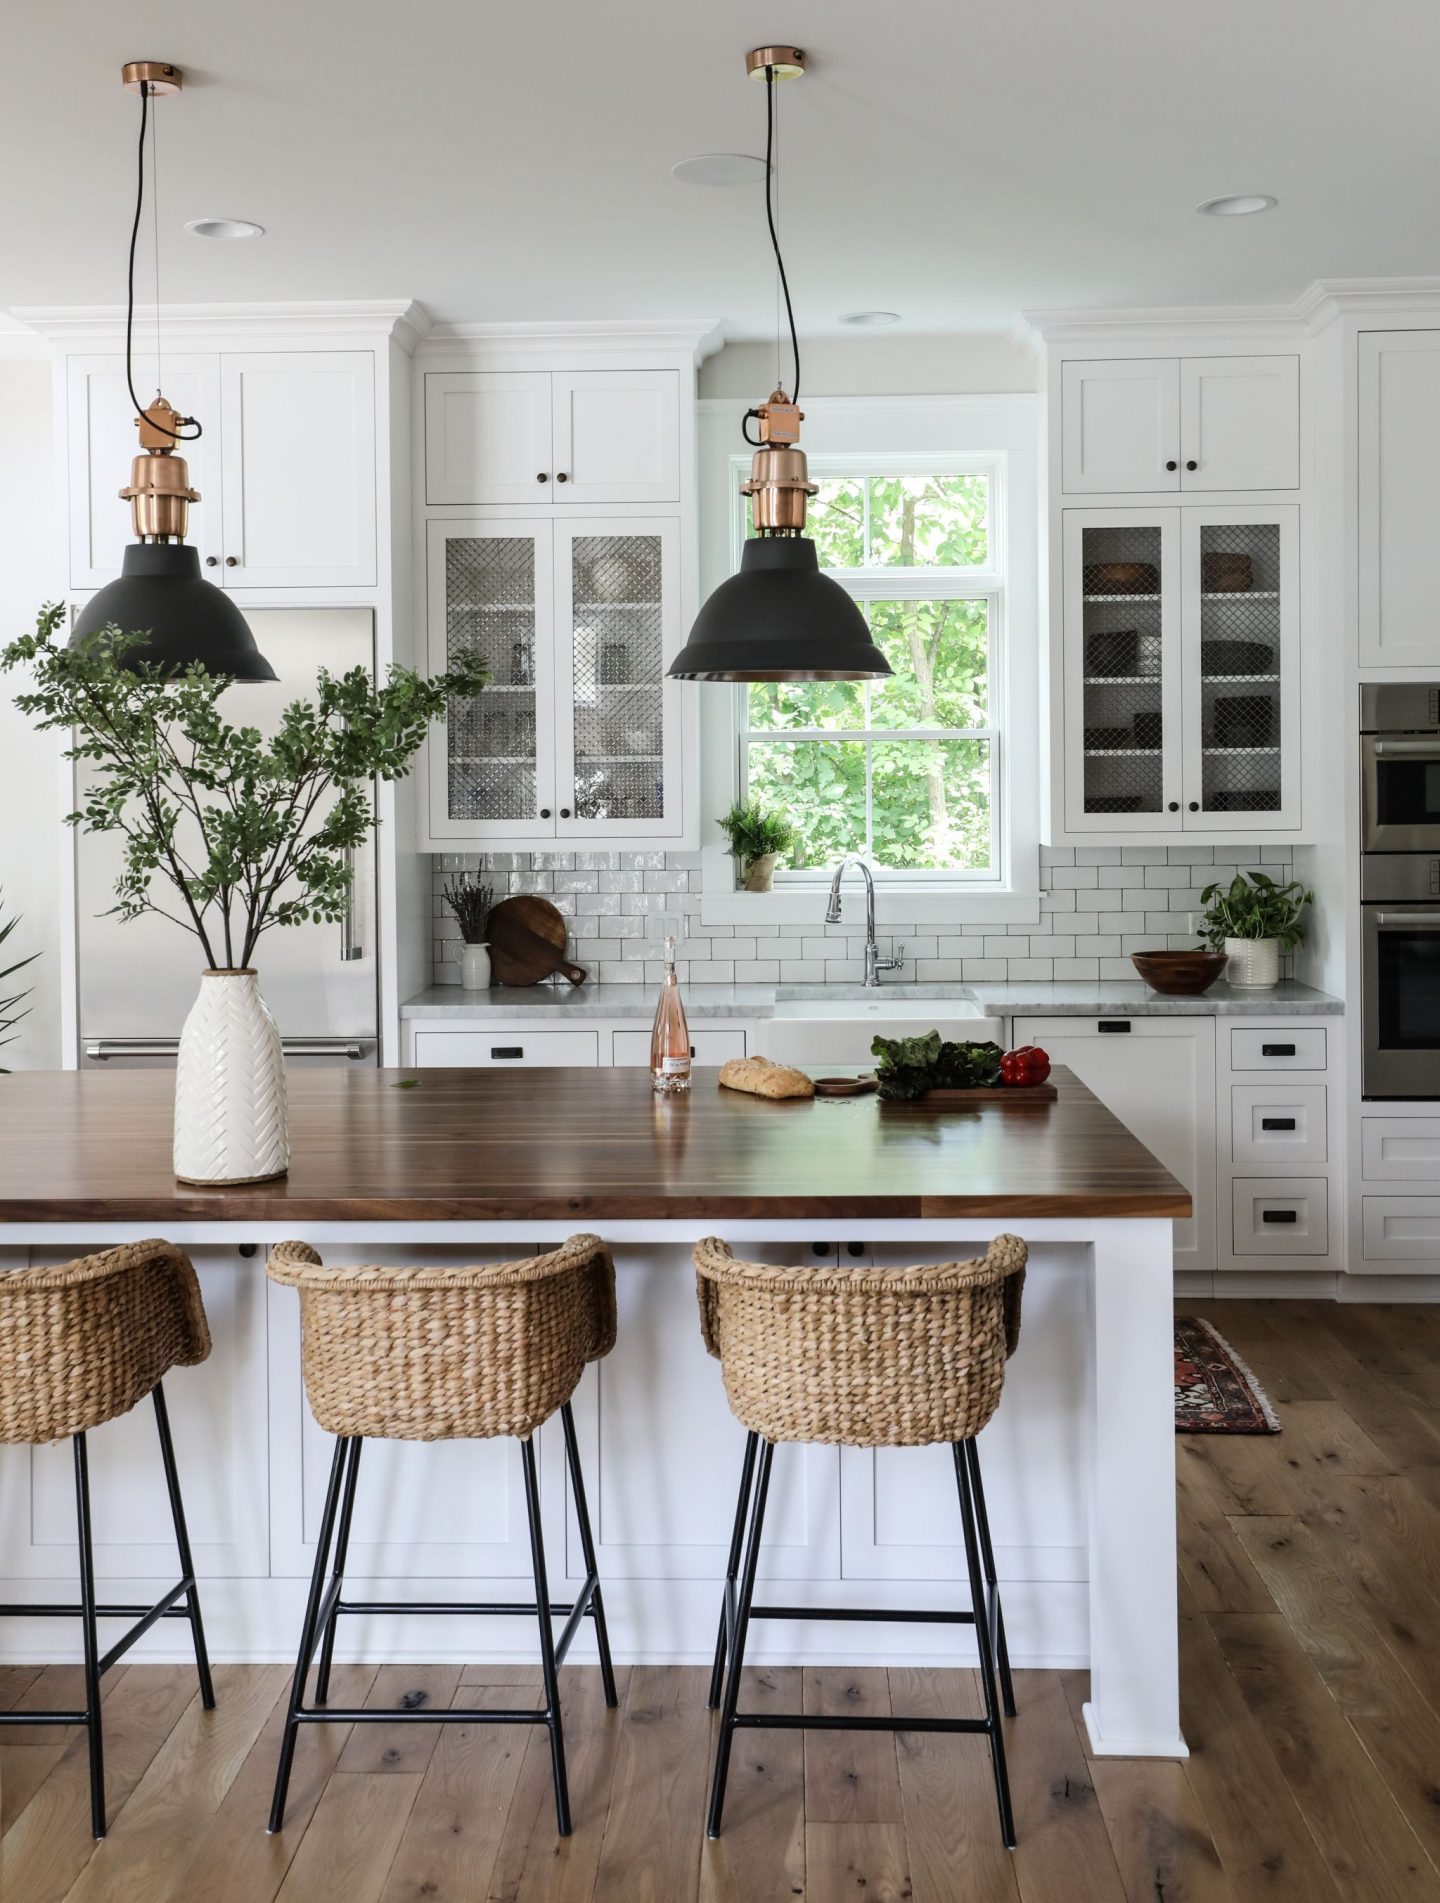 Traditional kitchen with classic style, simplicity, and sophistication from Park & Oak. Come see inspiring photos and learn 16 simple yet sophisticated kitchen design ideas.